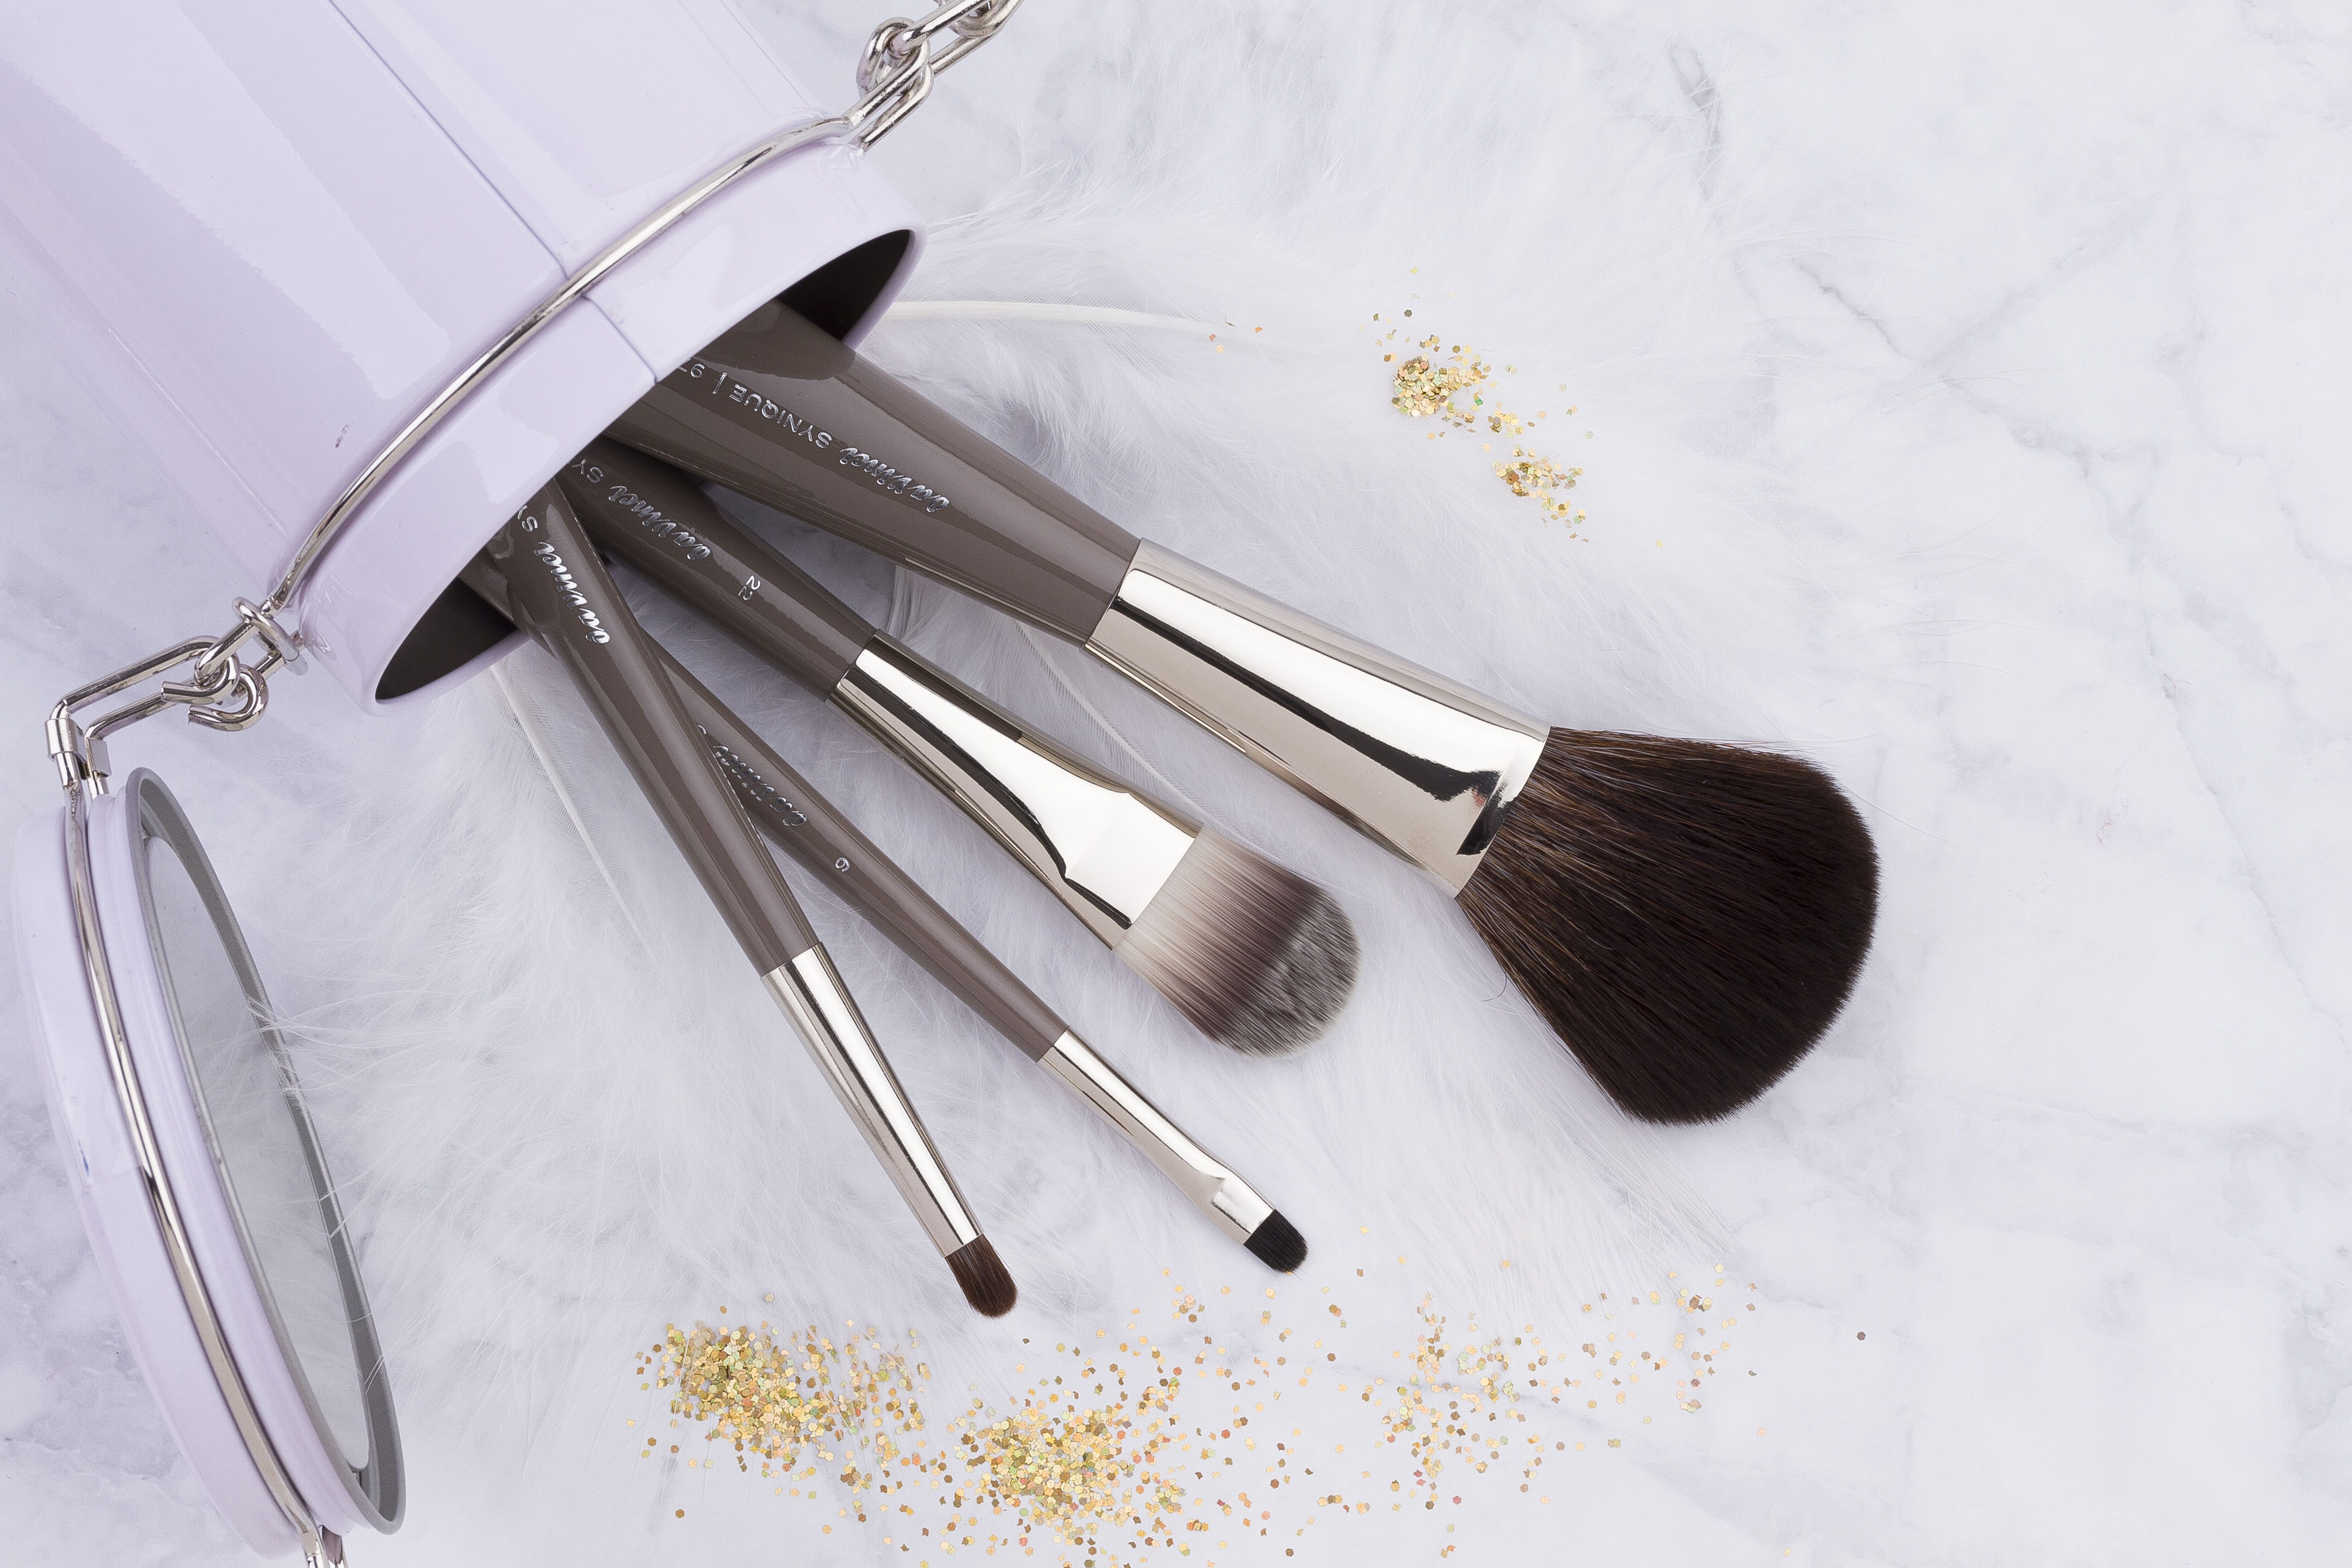 da Vinci SYNIQUE #makeupbrushes #handmade #in #germany # ...